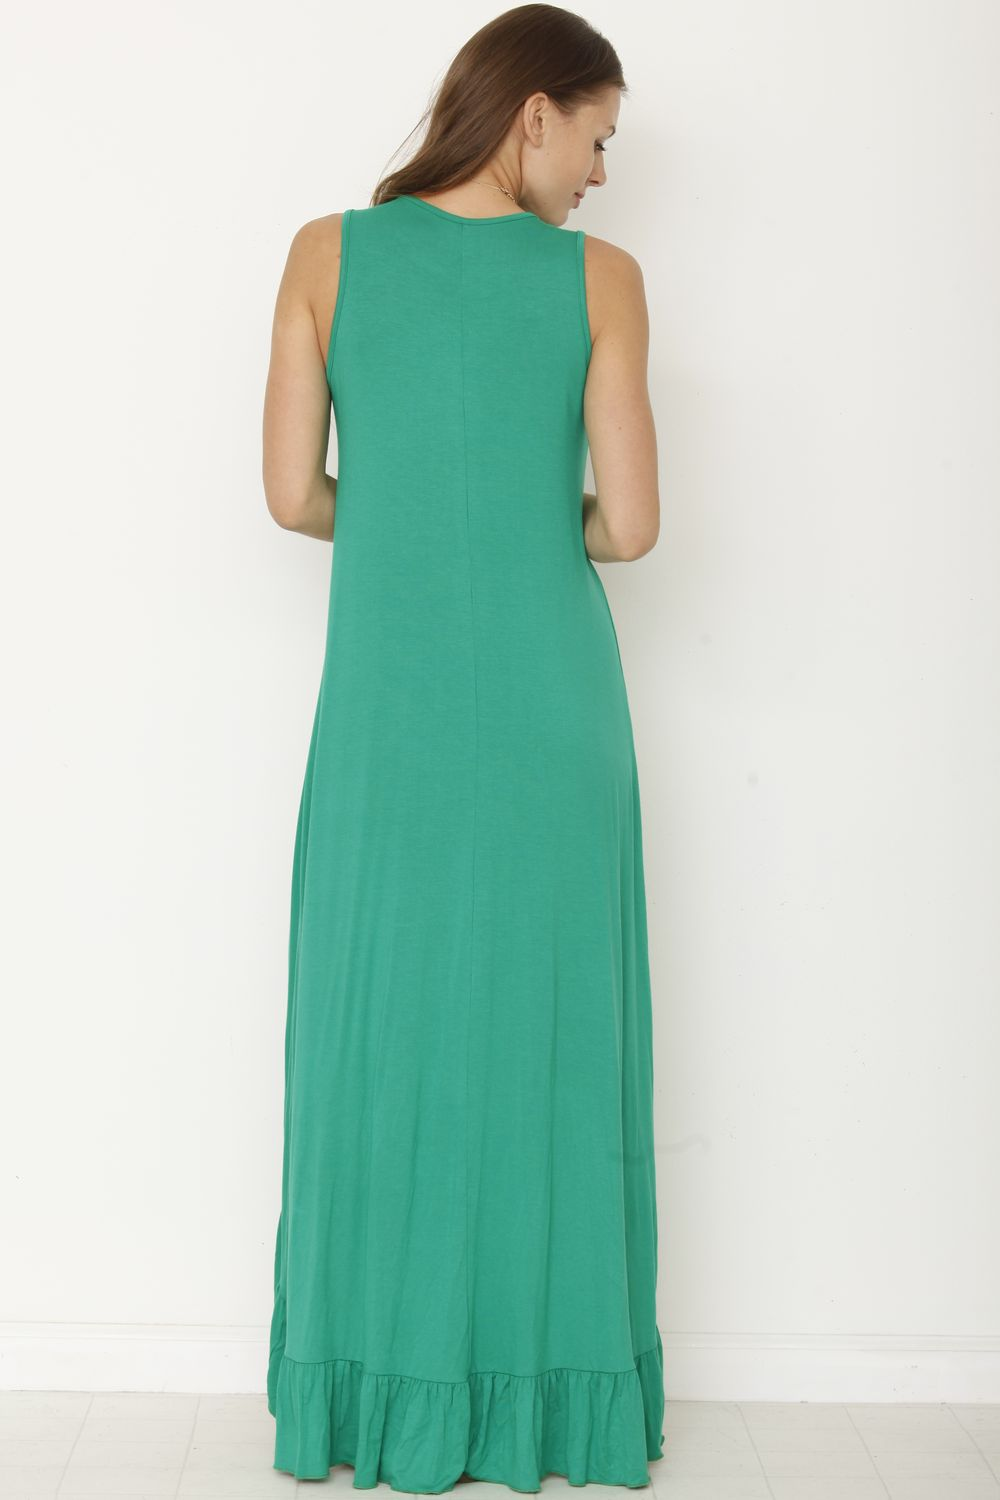 Solid Green Sleeveless High Low Maxi Dress